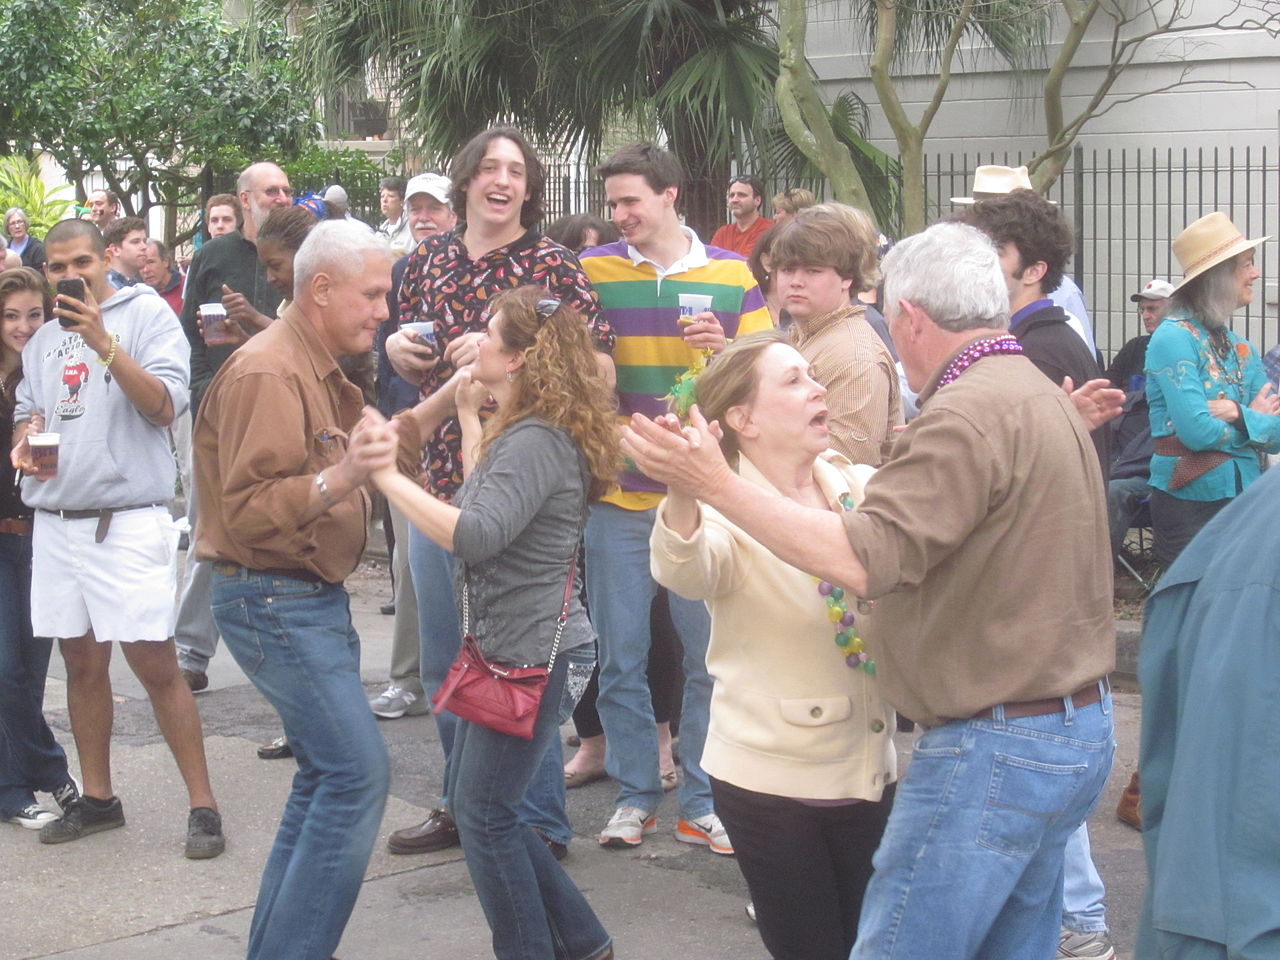 Small business owners dancing in the street.